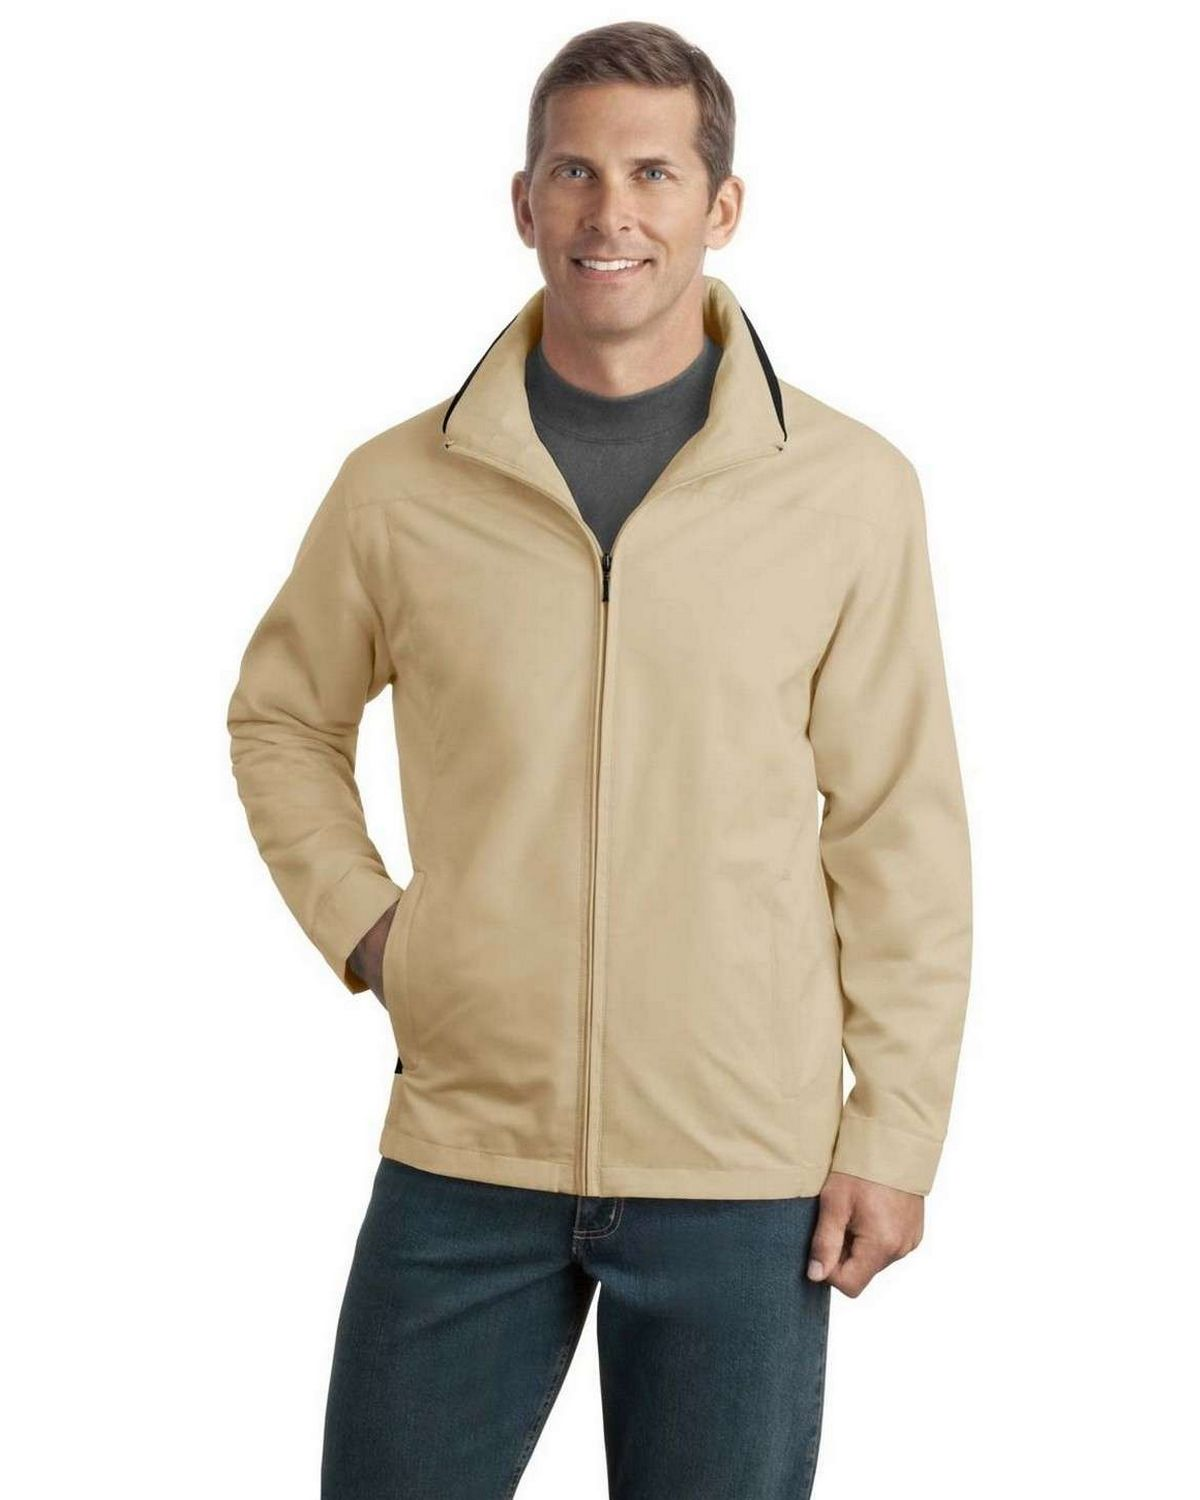 Port Authority J701 Successor Jacket